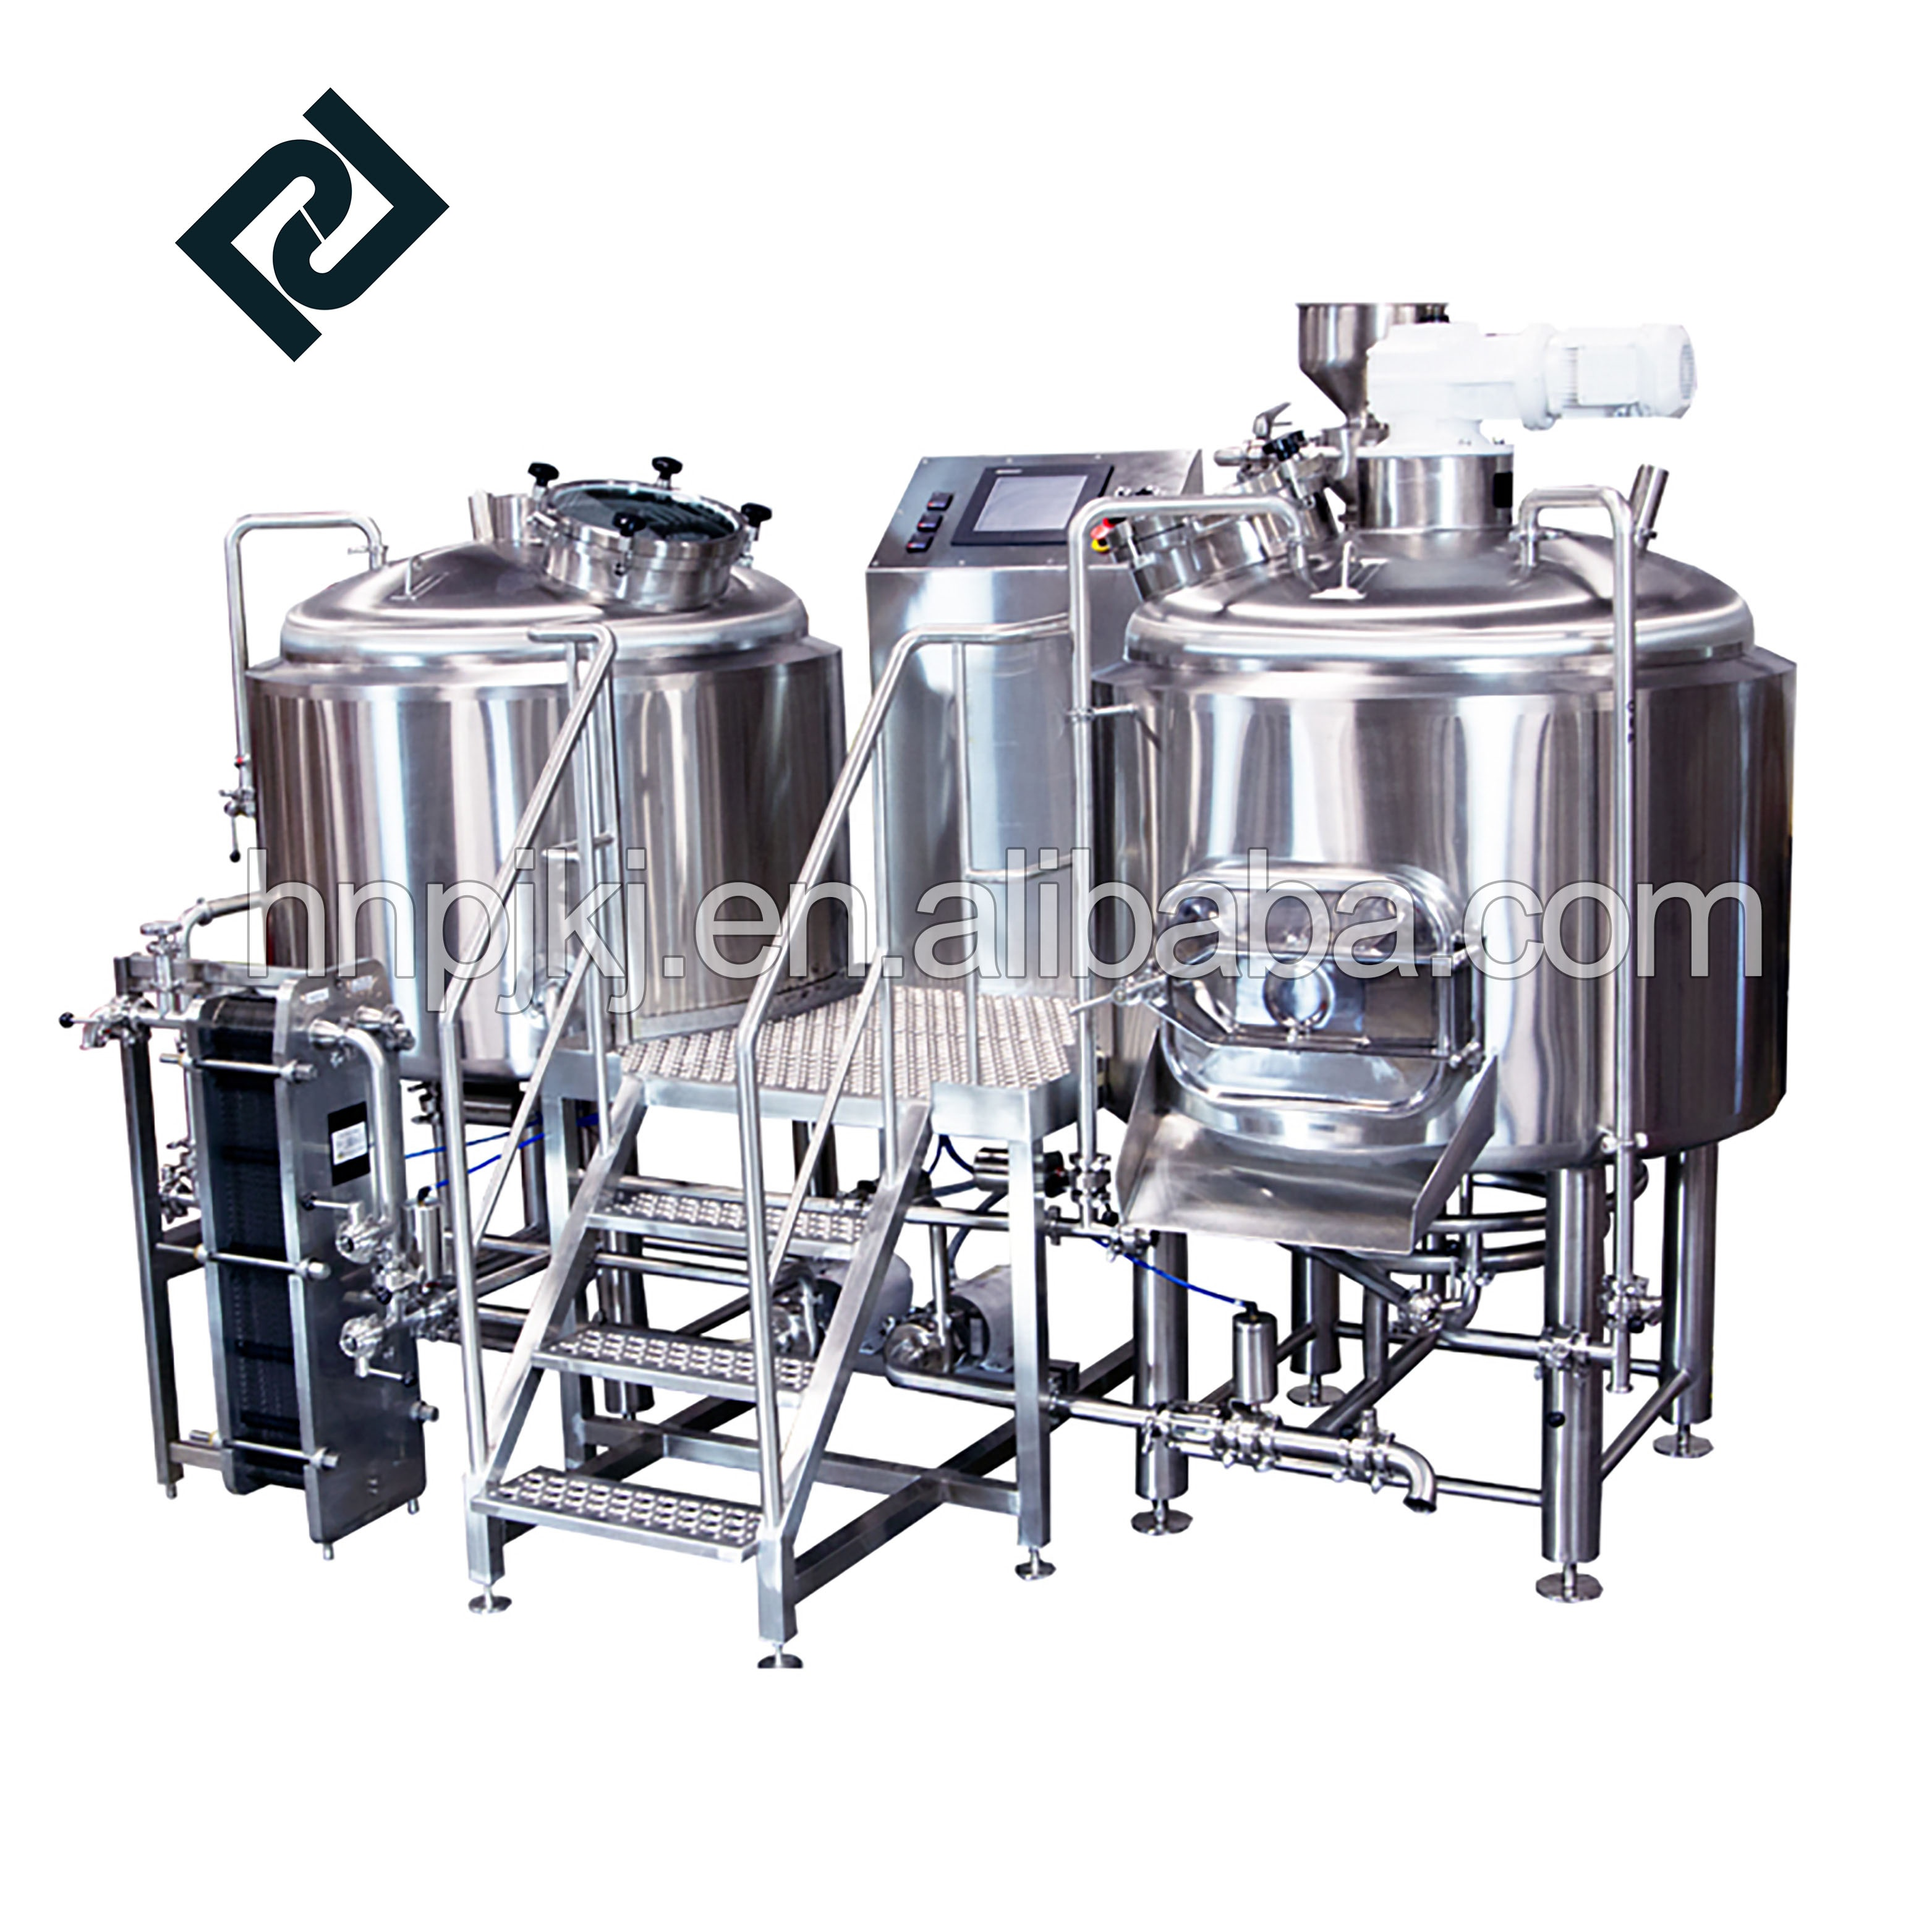 Competitive Price for Micro Brewery 50l 100l - Hot sale 1000l 10bbl 10hl micro brewery equipment beer brewing equipment for customers – Pijiang